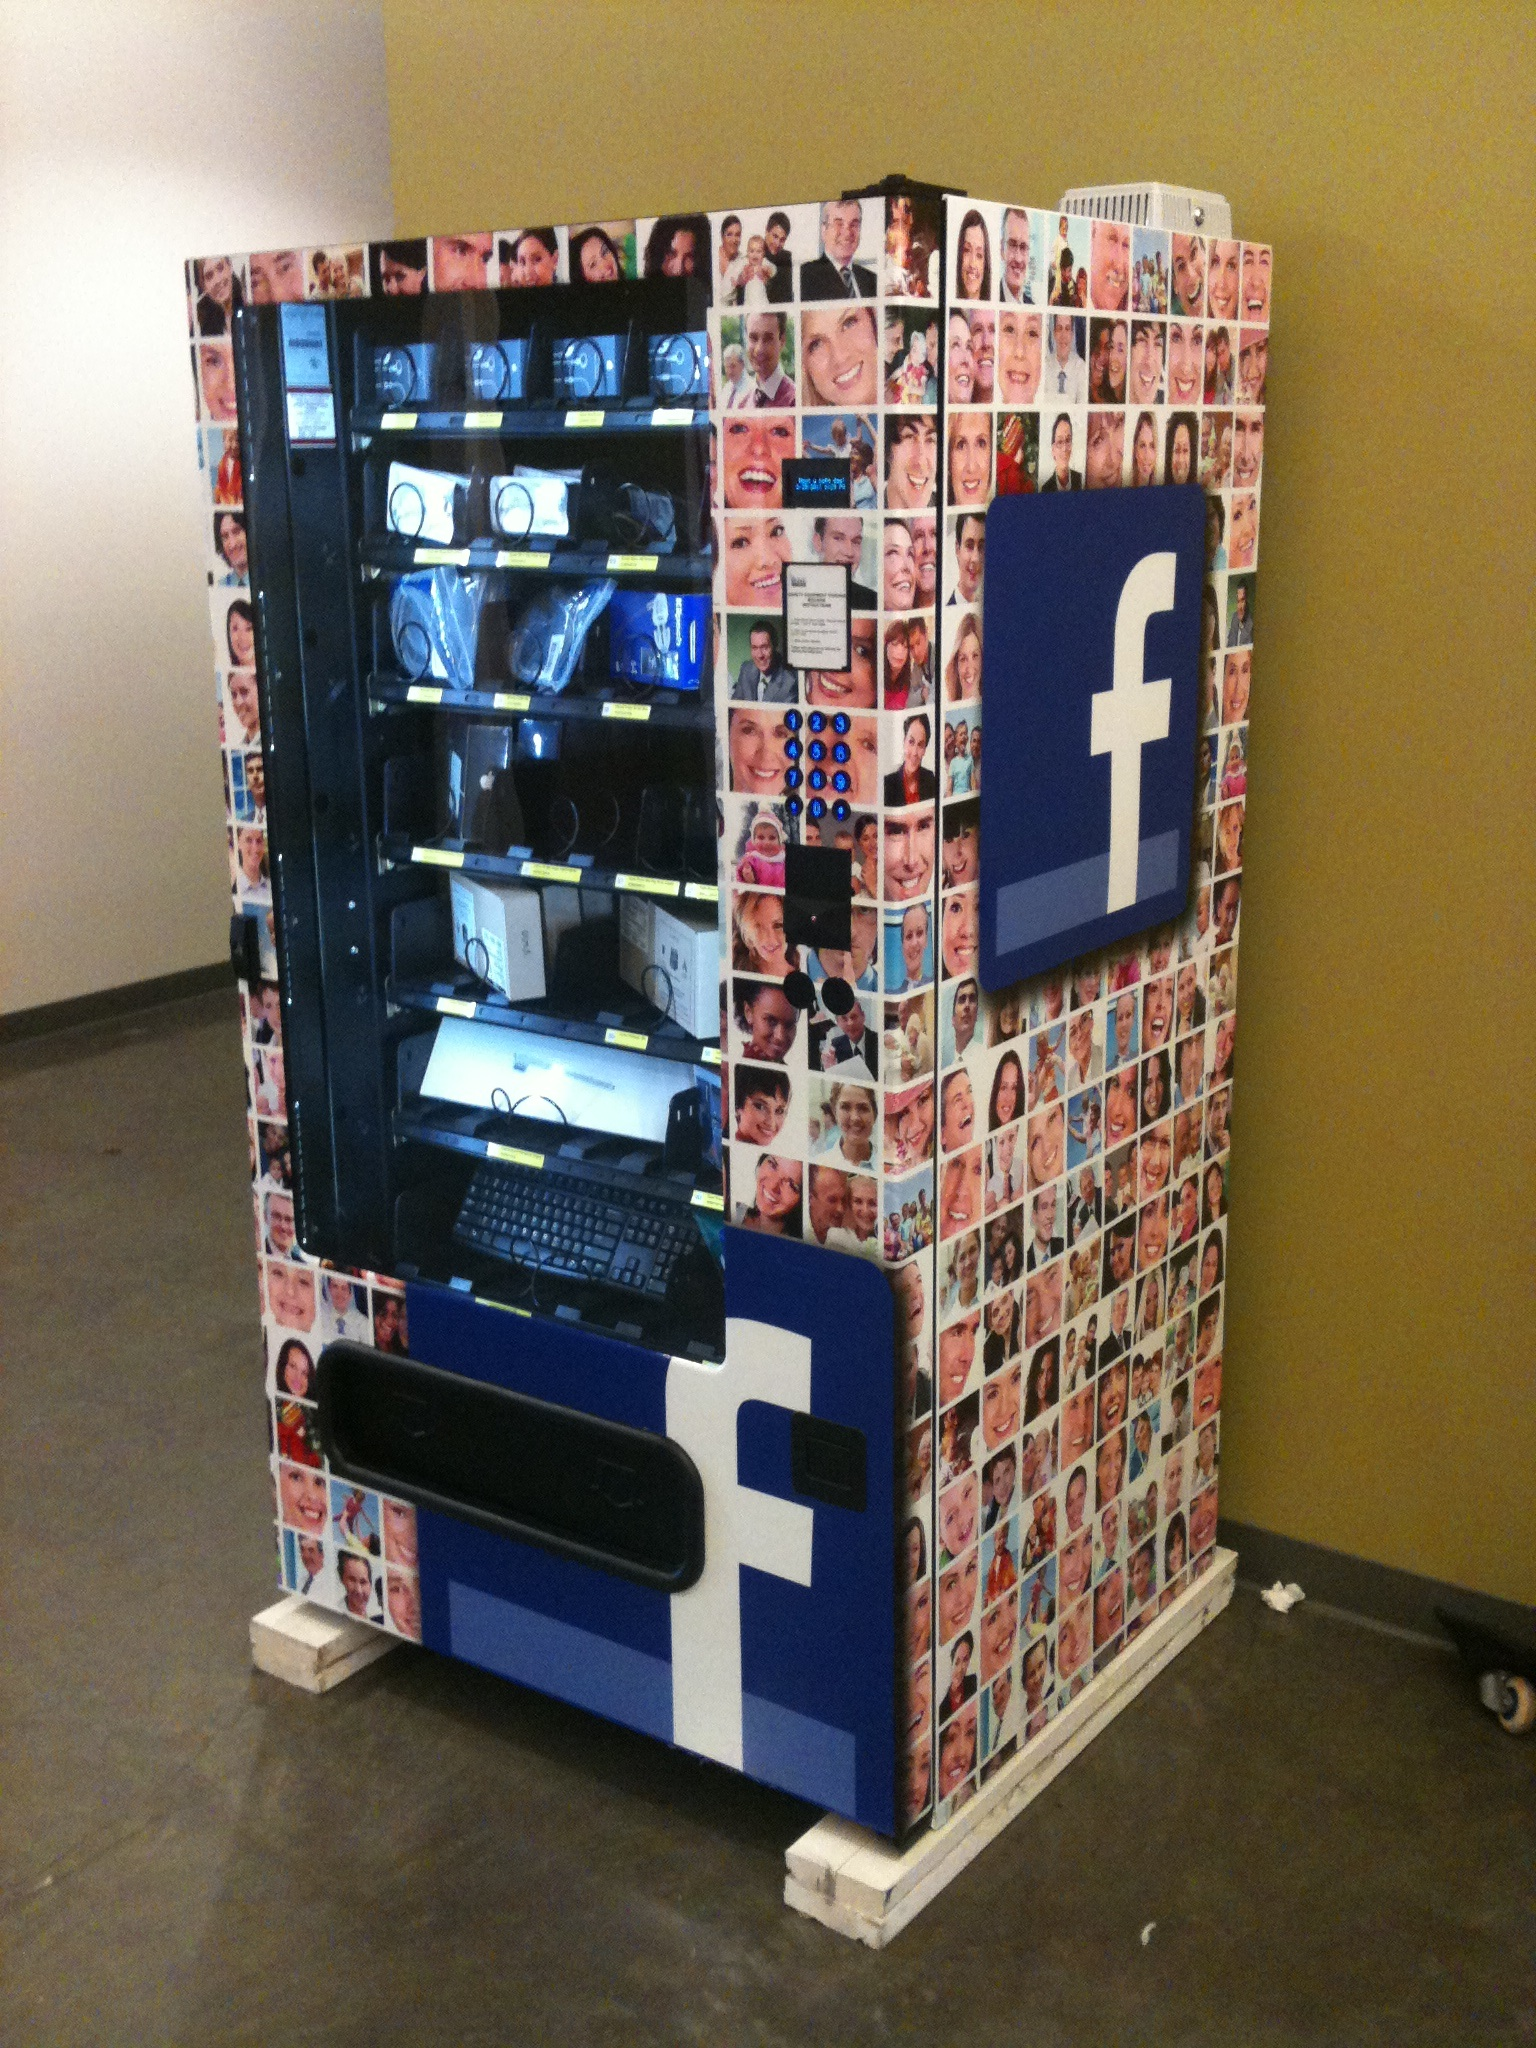 google copies facebook installs gadget vending machines. Black Bedroom Furniture Sets. Home Design Ideas